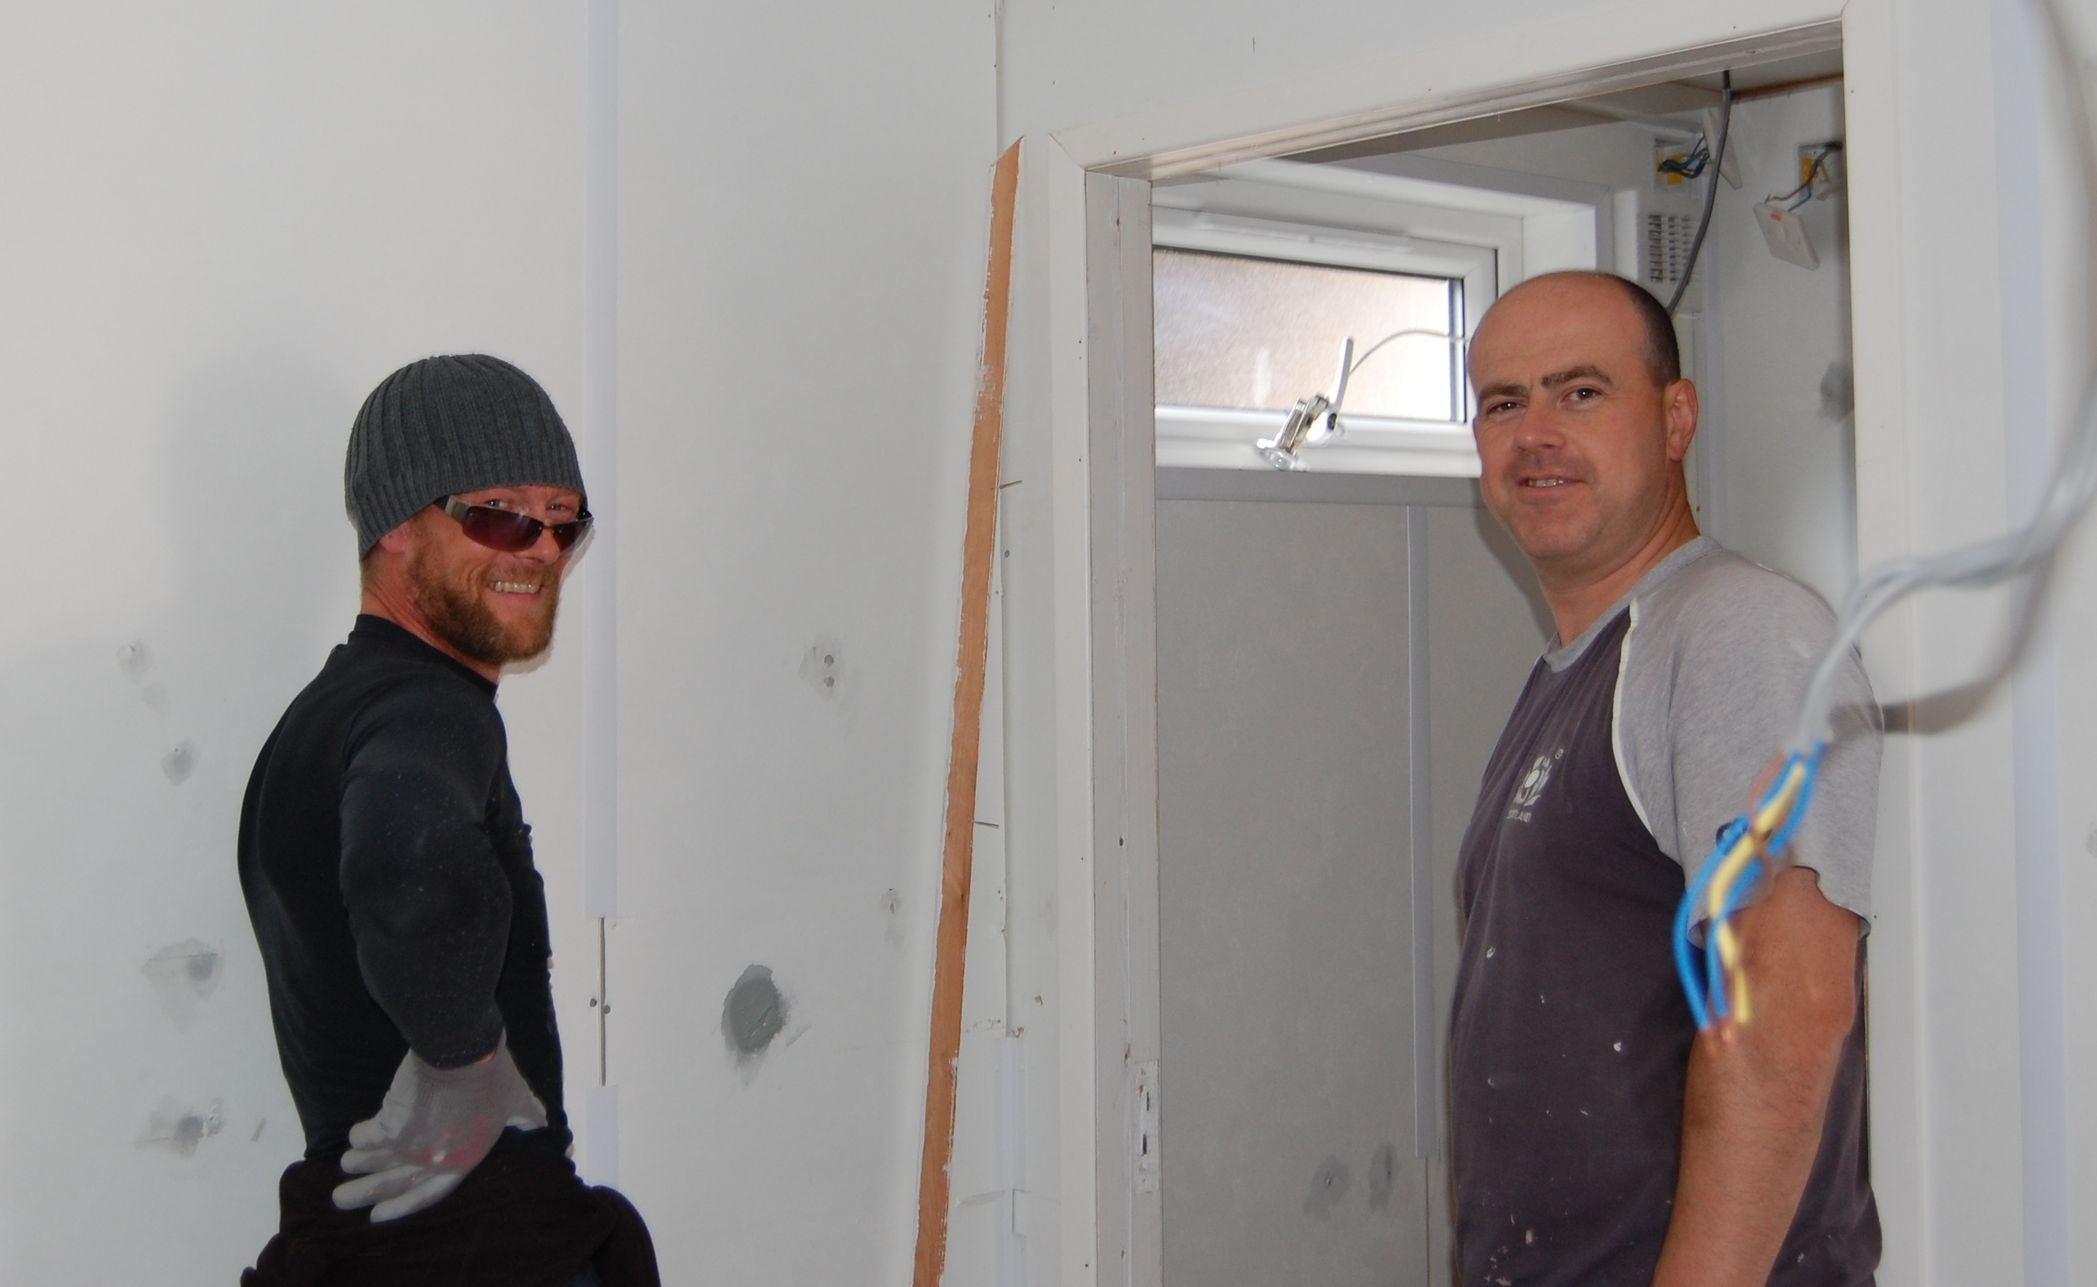 Graham and Mark grafting away in the cabin...Apologies for the mug shot guys!